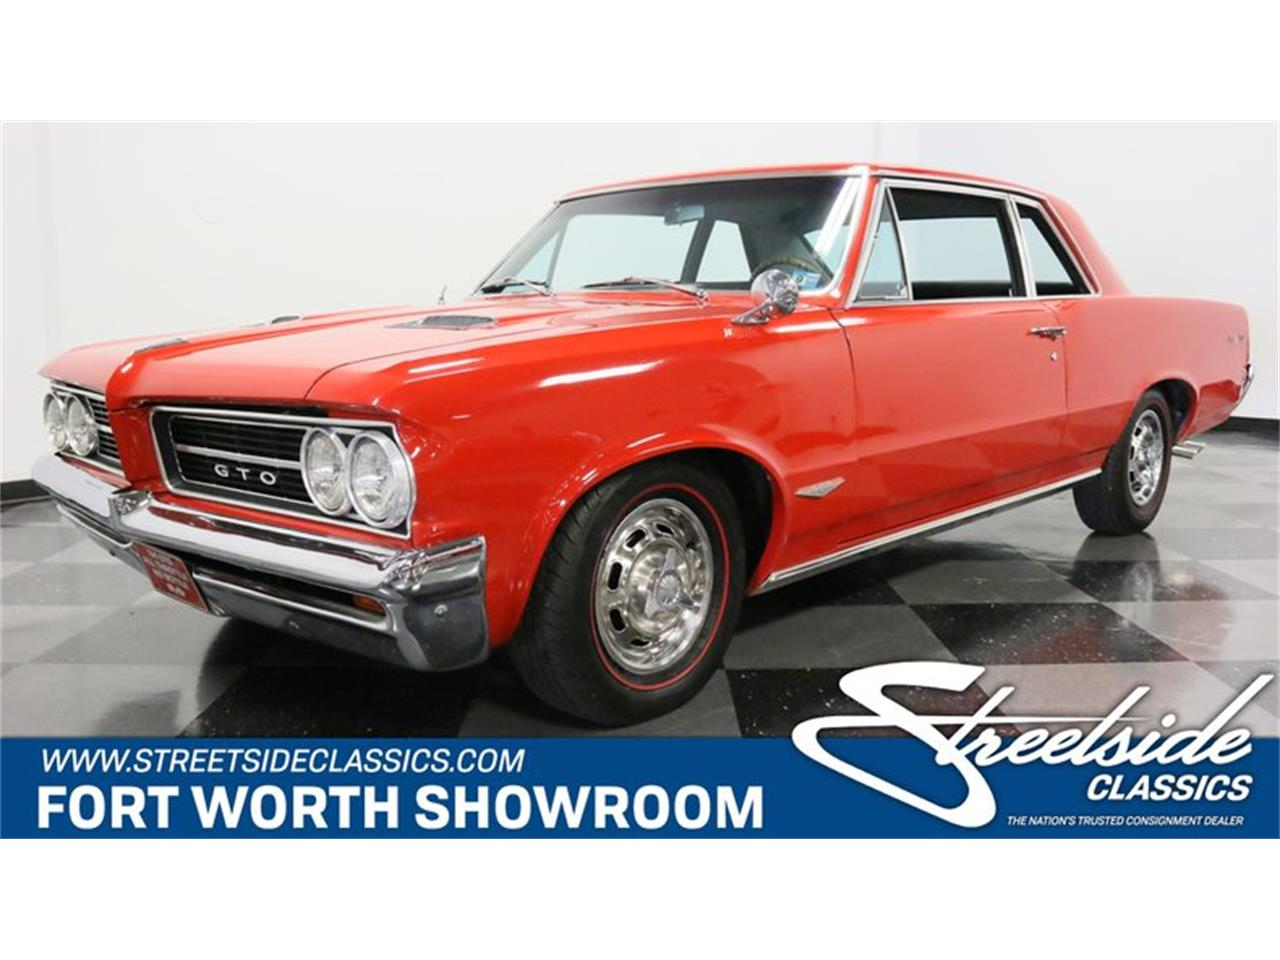 For Sale: 1964 Pontiac GTO in Ft Worth, Texas